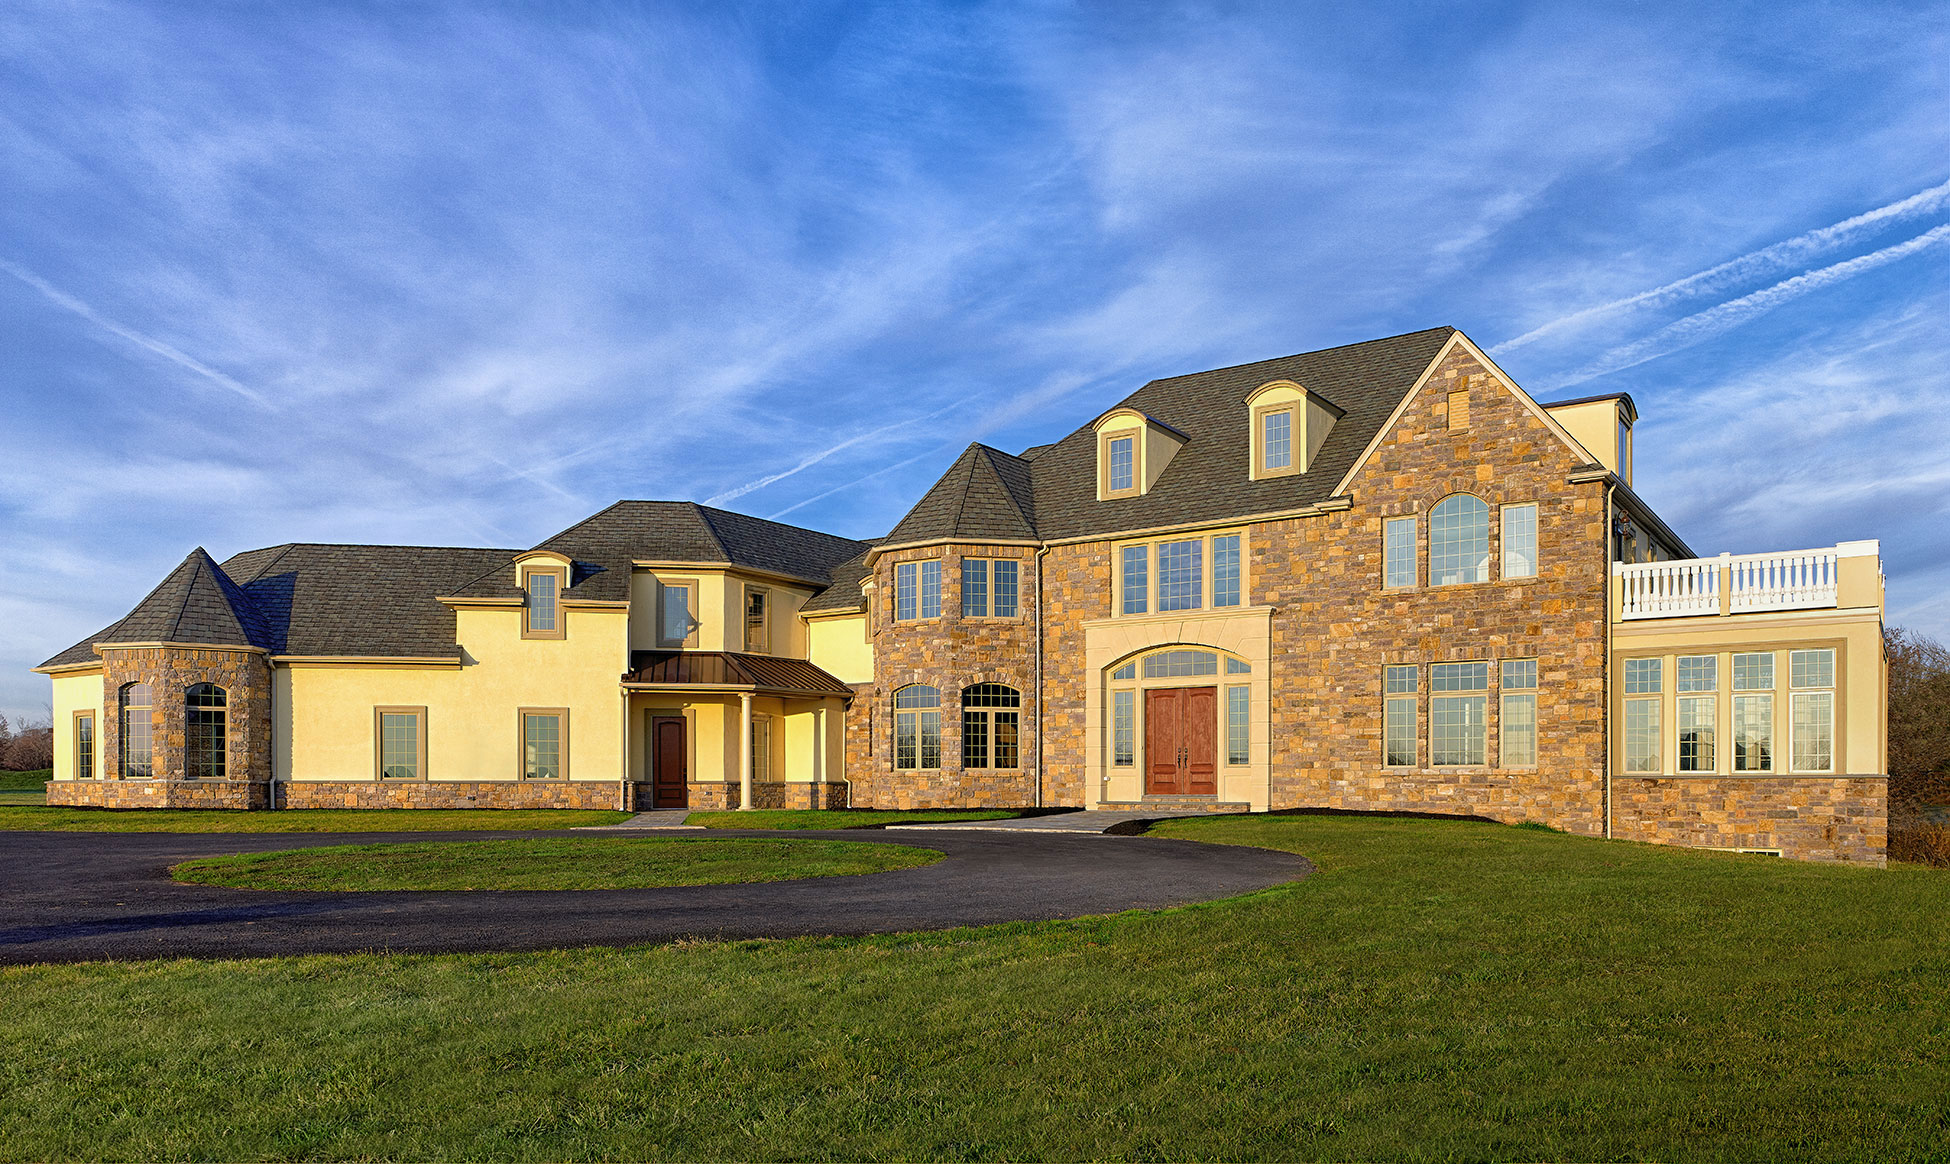 Home edw builders building dream homes in bucks for South jersey home builders